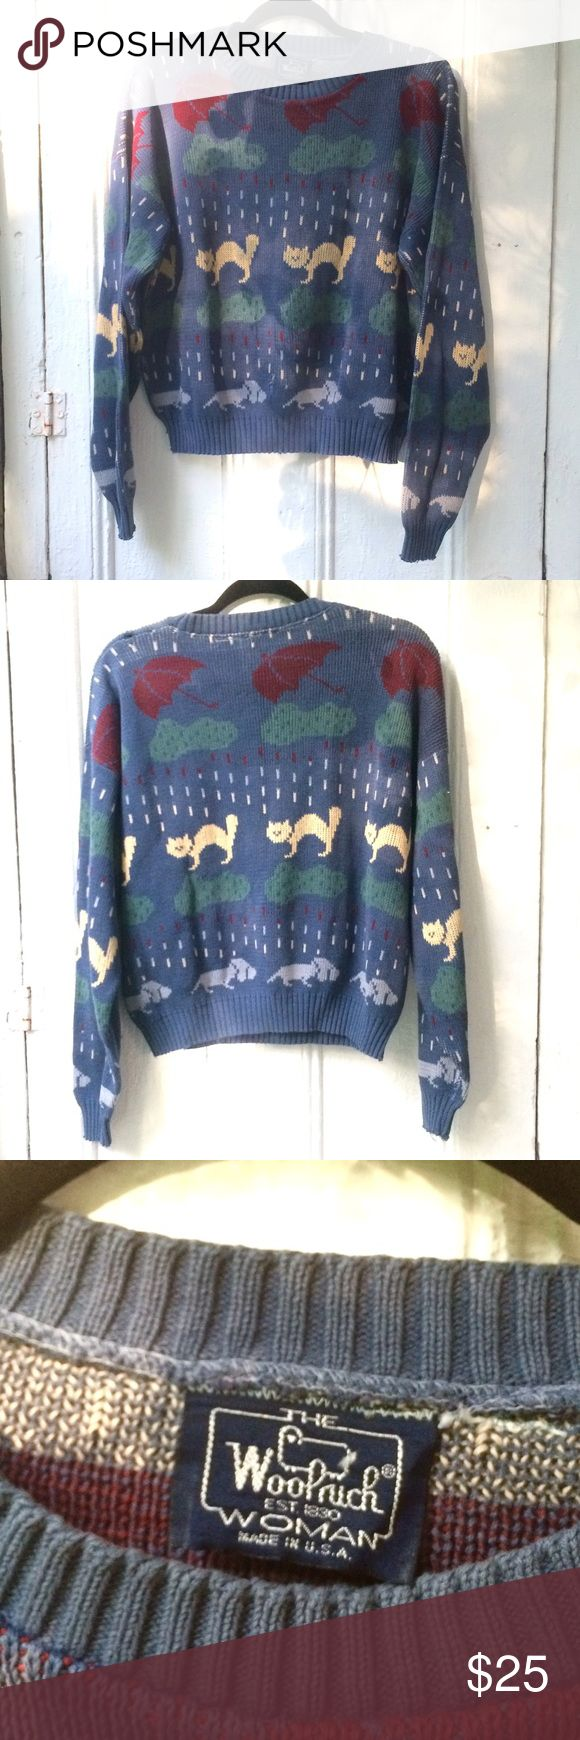 VINTAGE raining cats and dogs sweater This amazing sweater has tons of character! The only imperfections are some holes around the shoulders and one hole in front (pictured). Most likely wool or wool/cotton blend, would recommend washing separately in cold water and laying flat or hanging to dry. Offers welcome! Woolrich Sweaters Crew & Scoop Necks